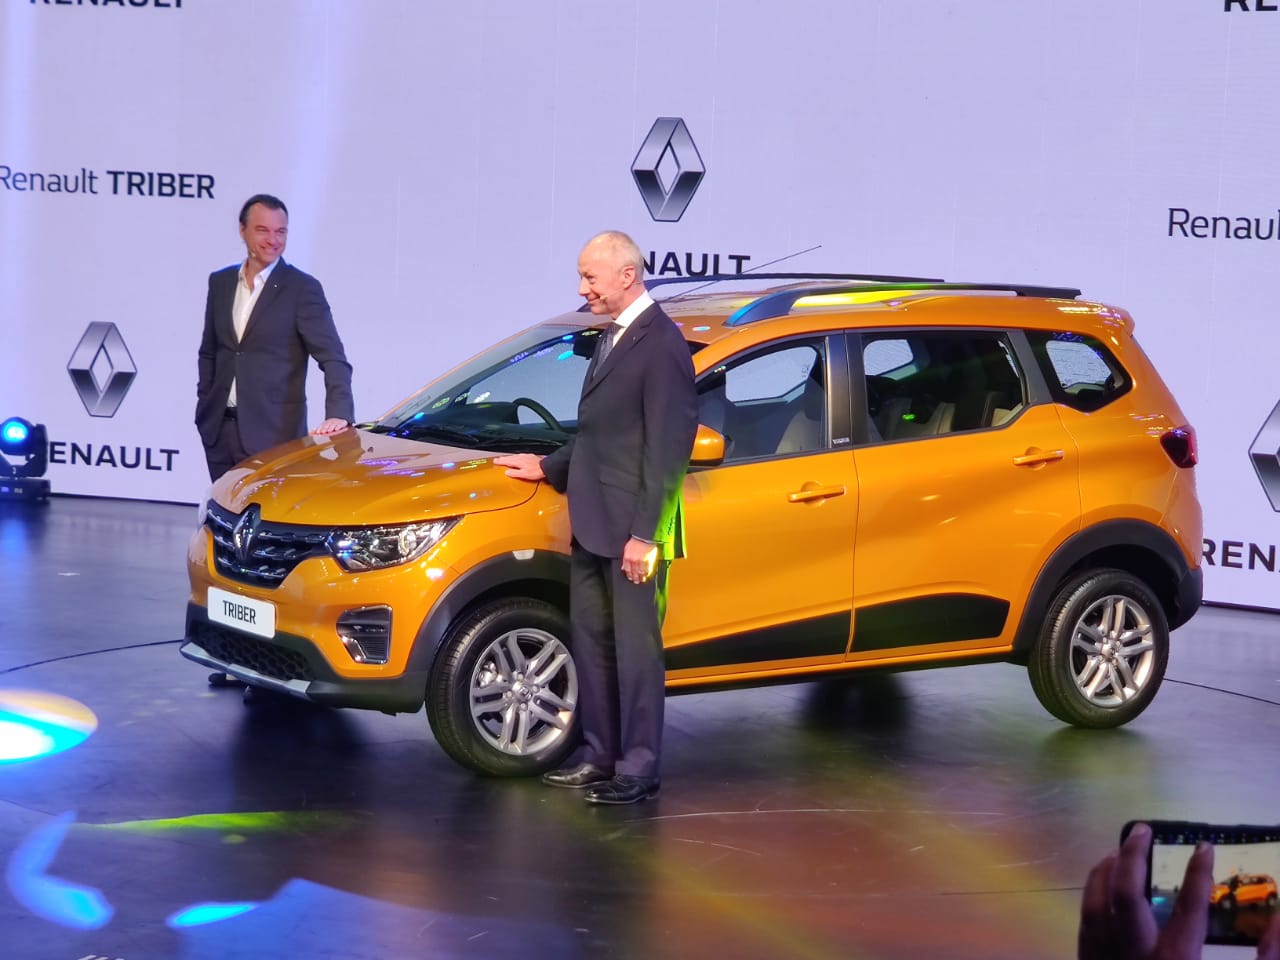 Renault Triber Unveiled Is The Most Affordable 7 Seater Car